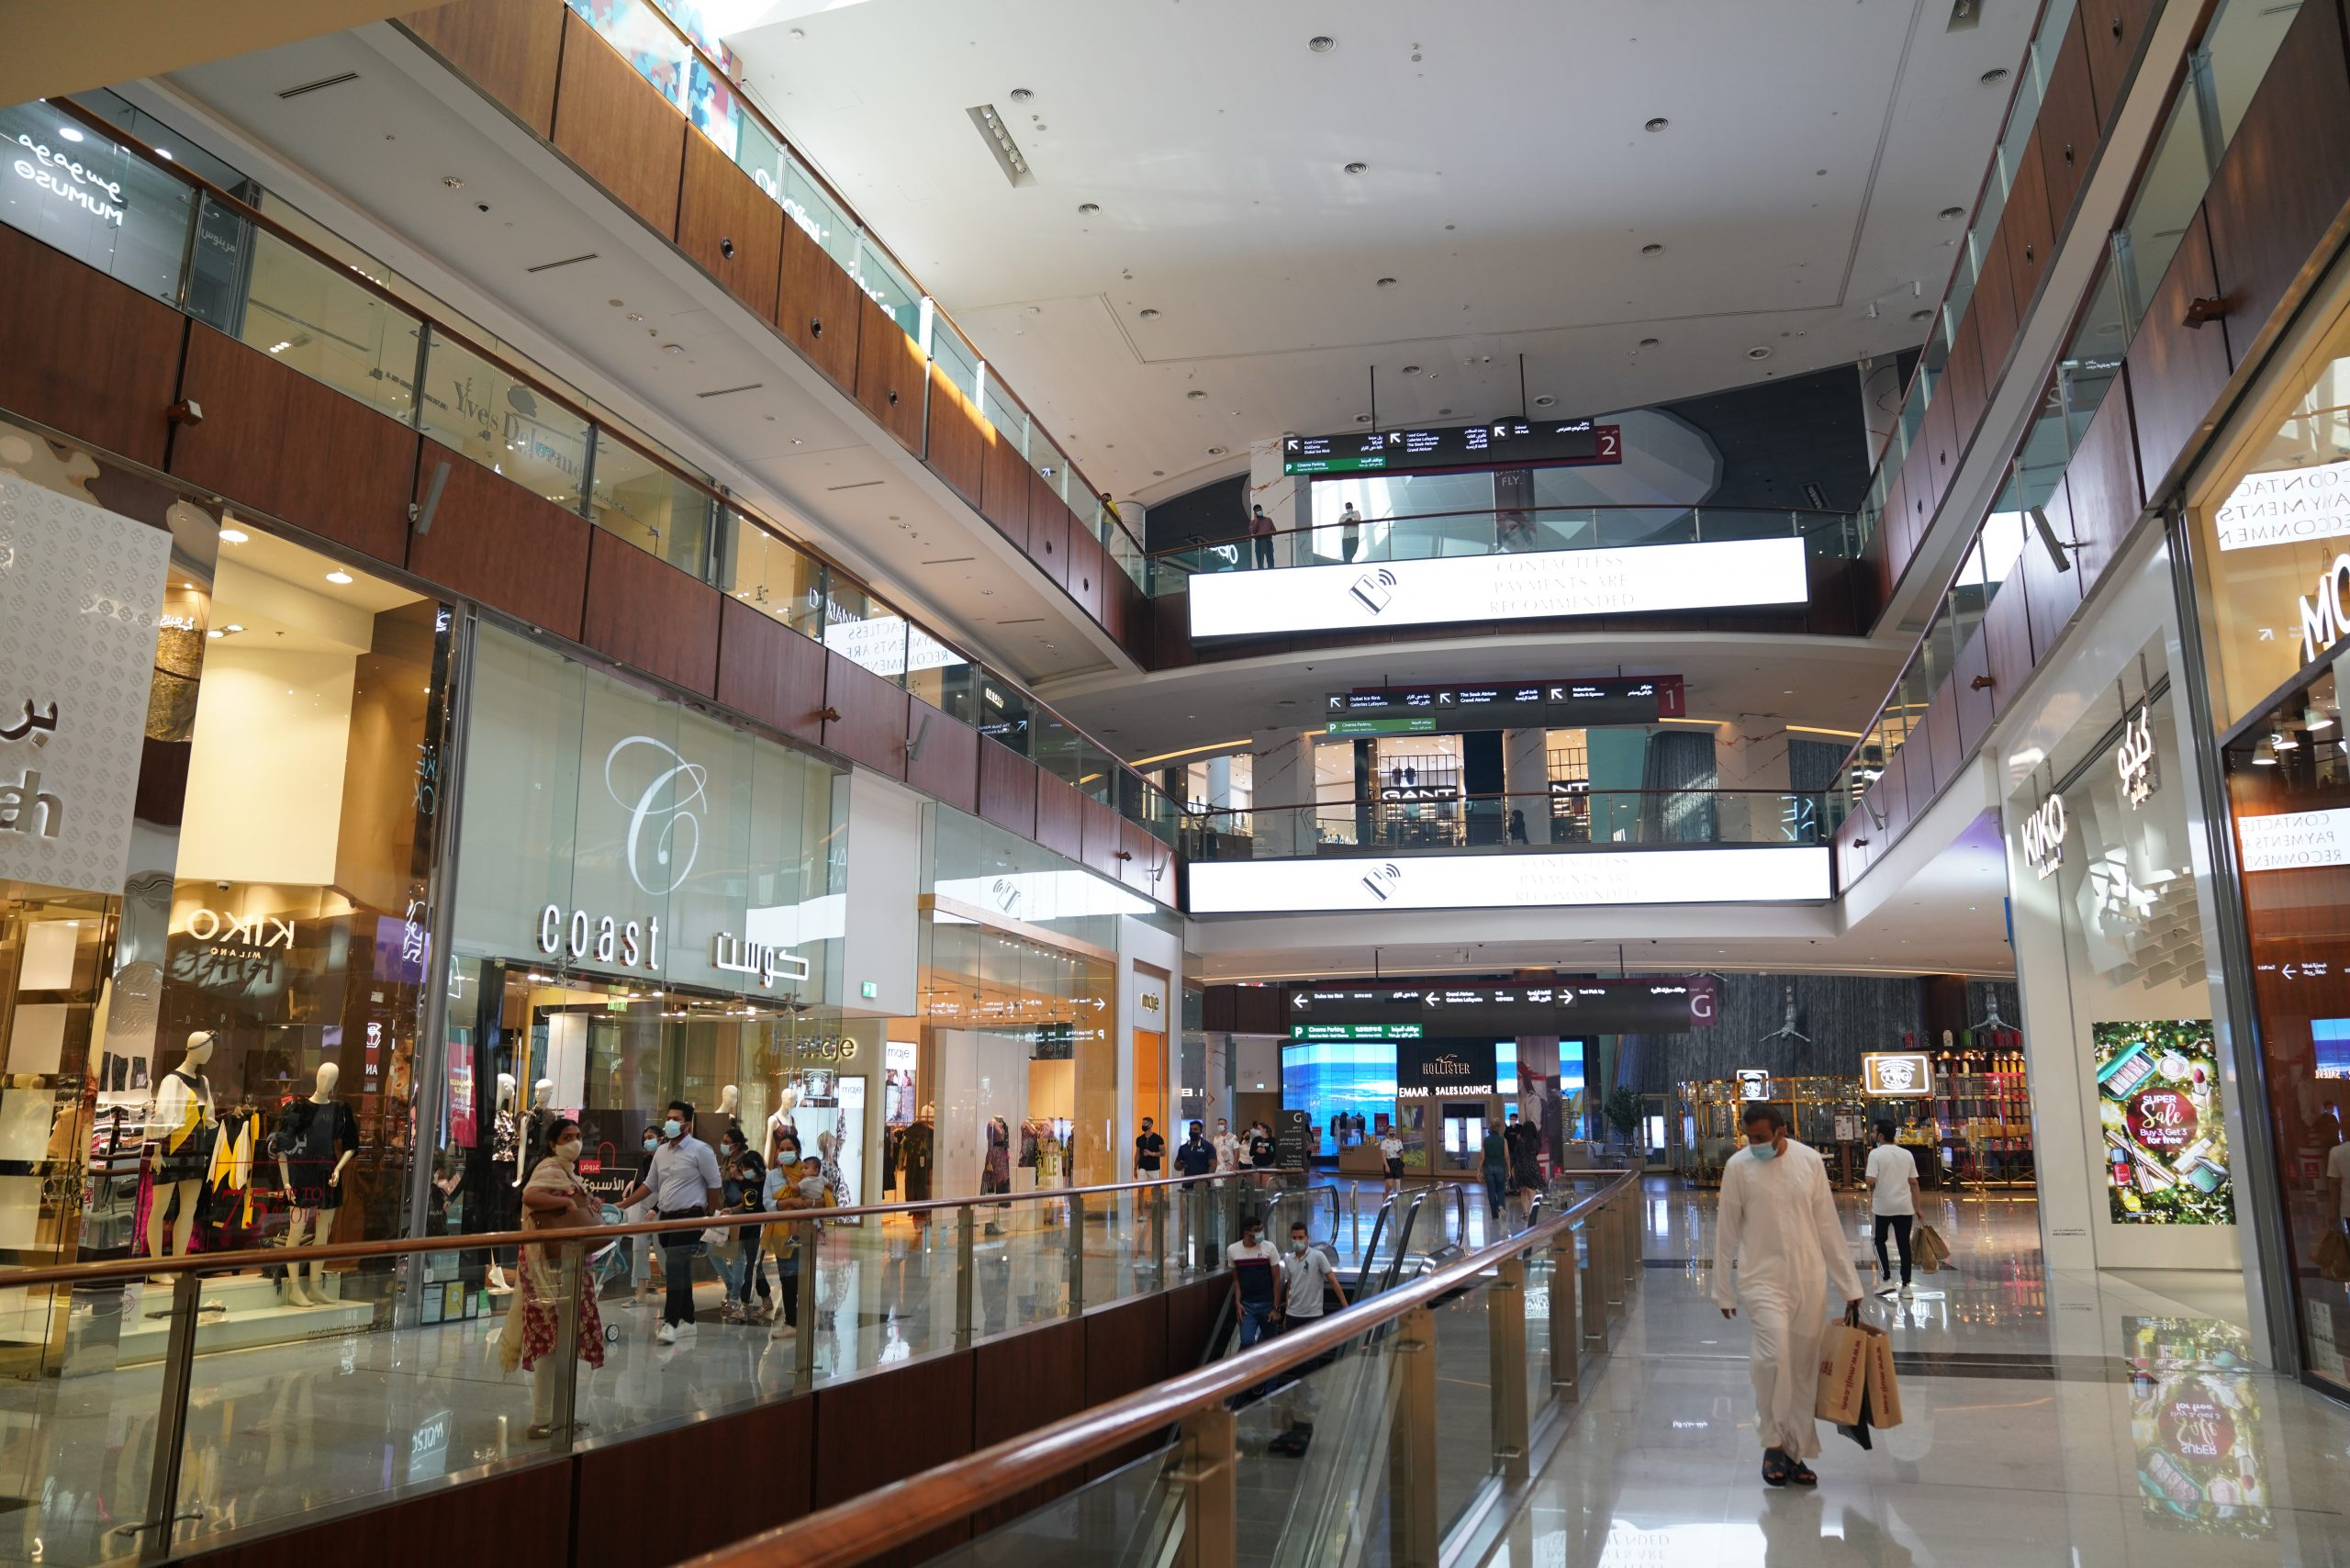 A shopping mall in Dubai